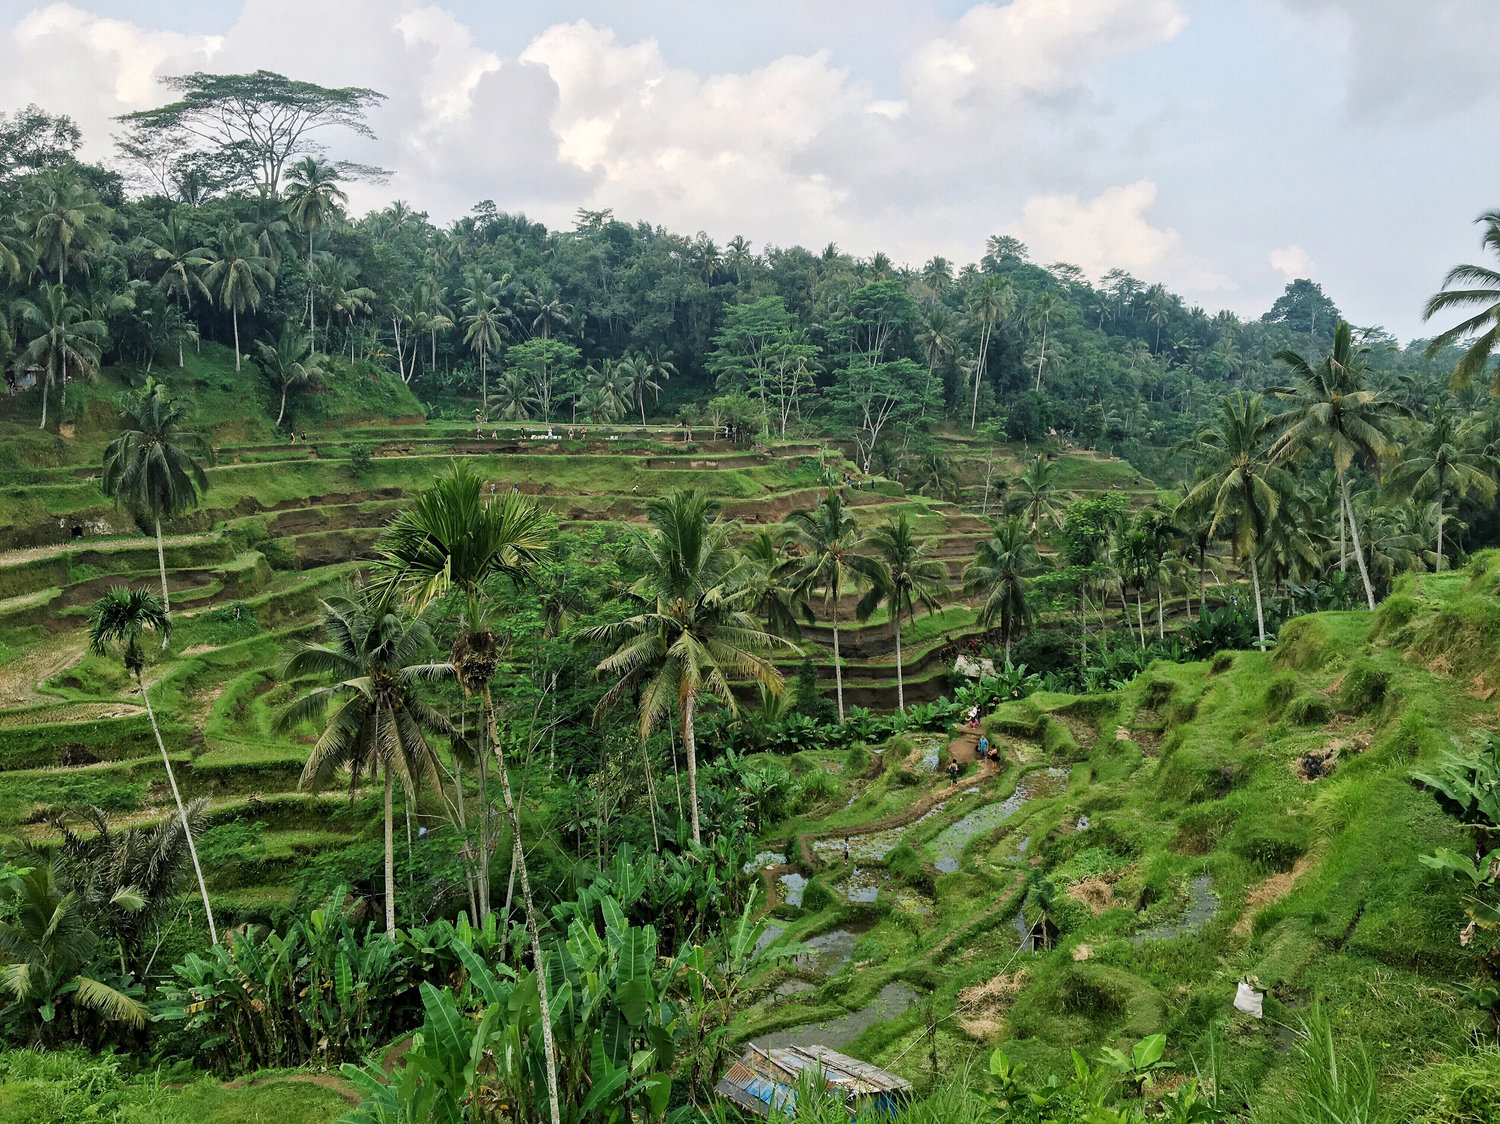 r&R Guide to Ubud - January 6th, 2017